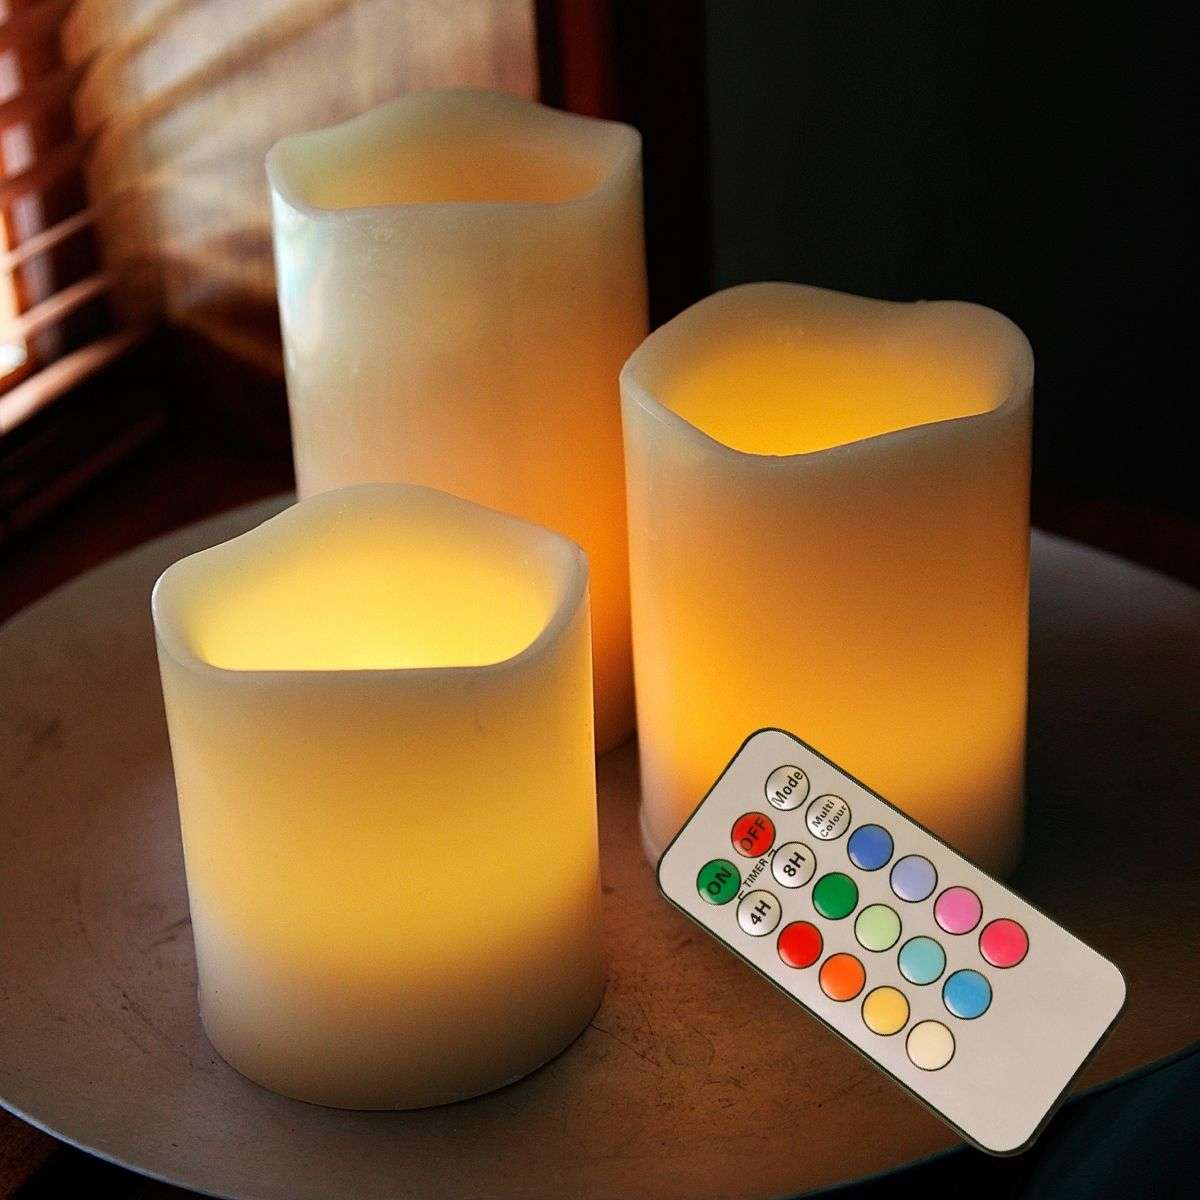 LED candle Wax, RGB colour change, remote control-1522390-31